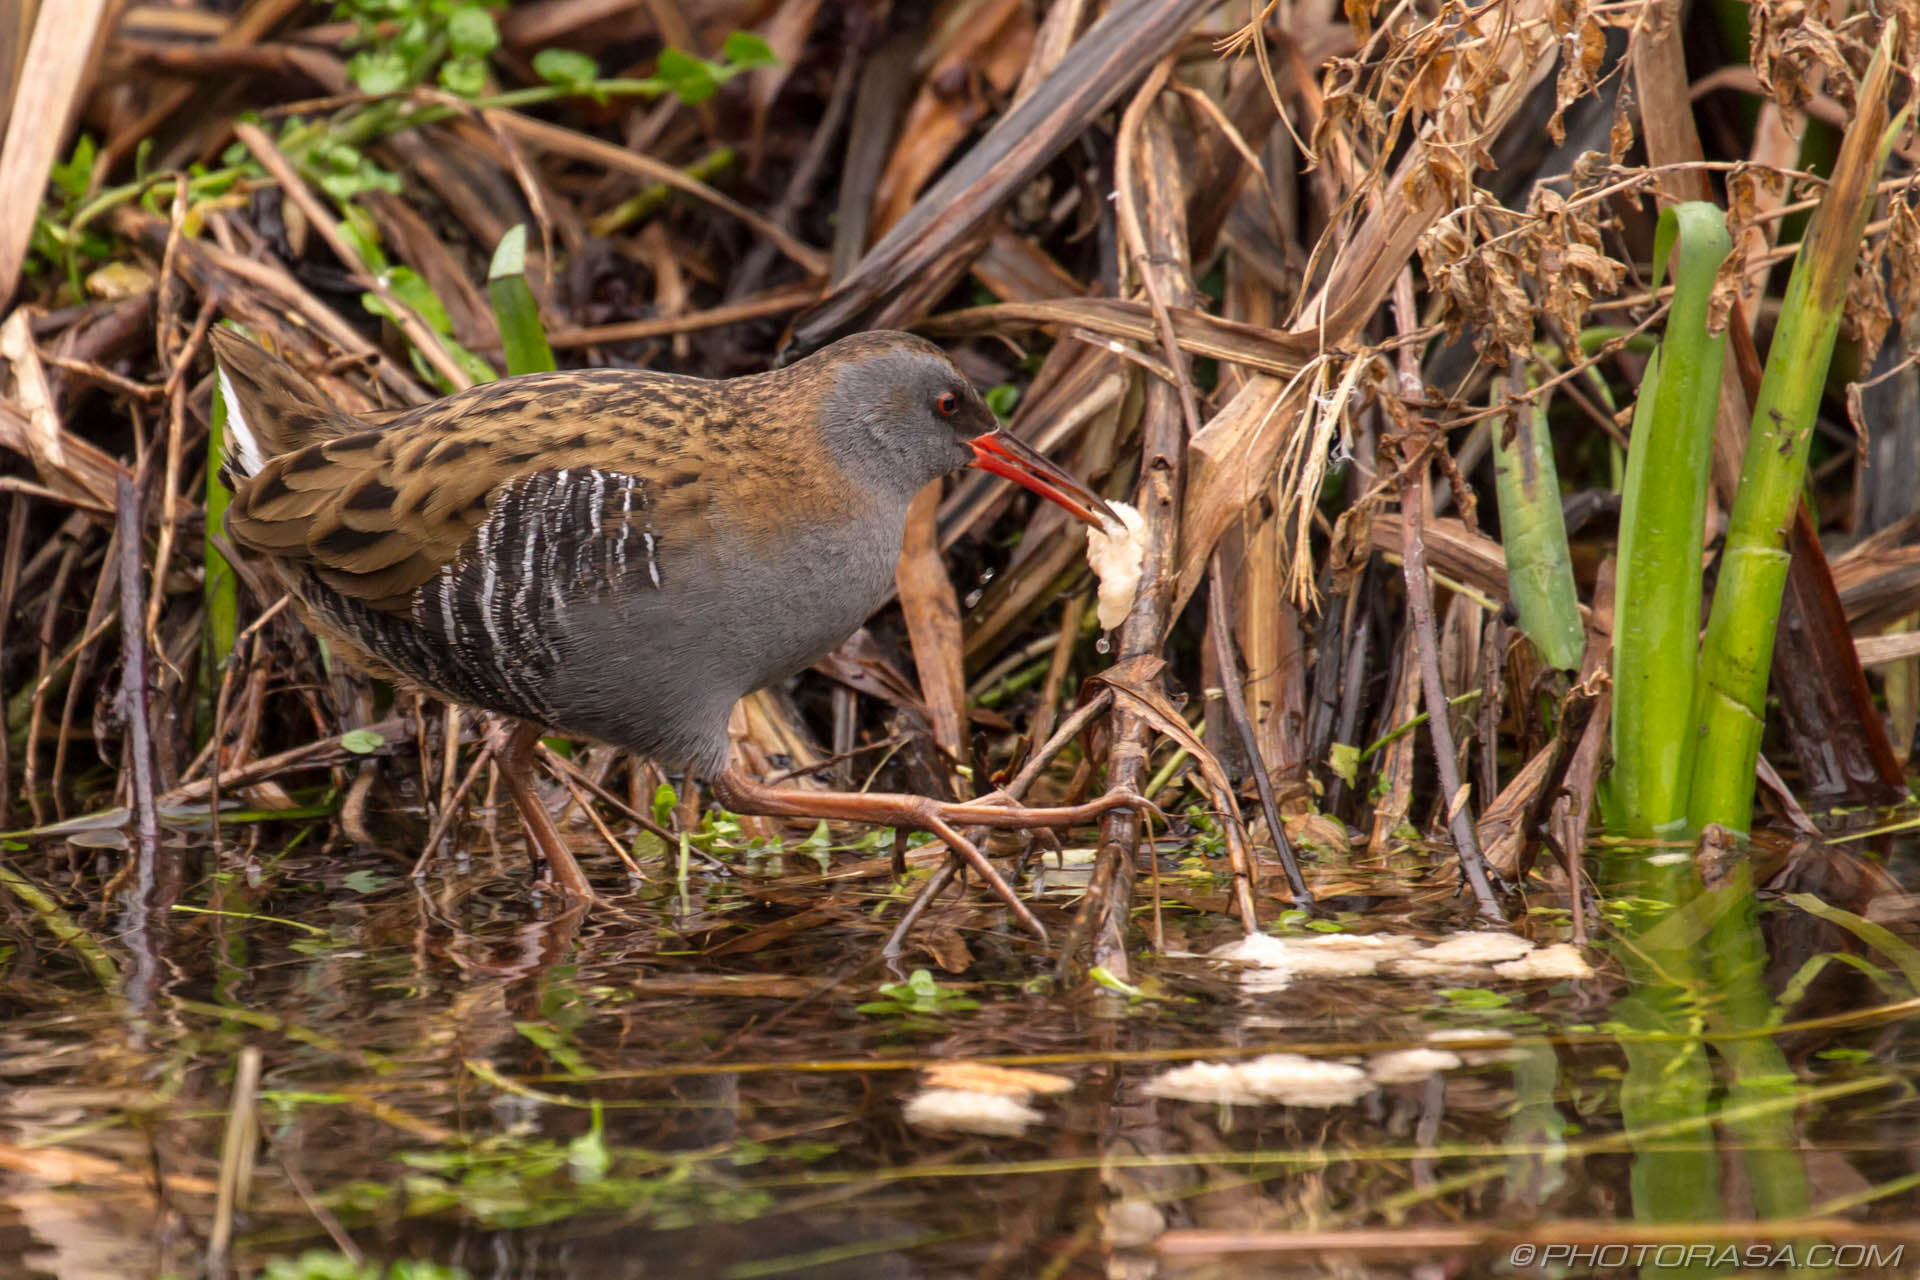 https://photorasa.com/water-rail-by-the-stream/stepping-across-foliage/